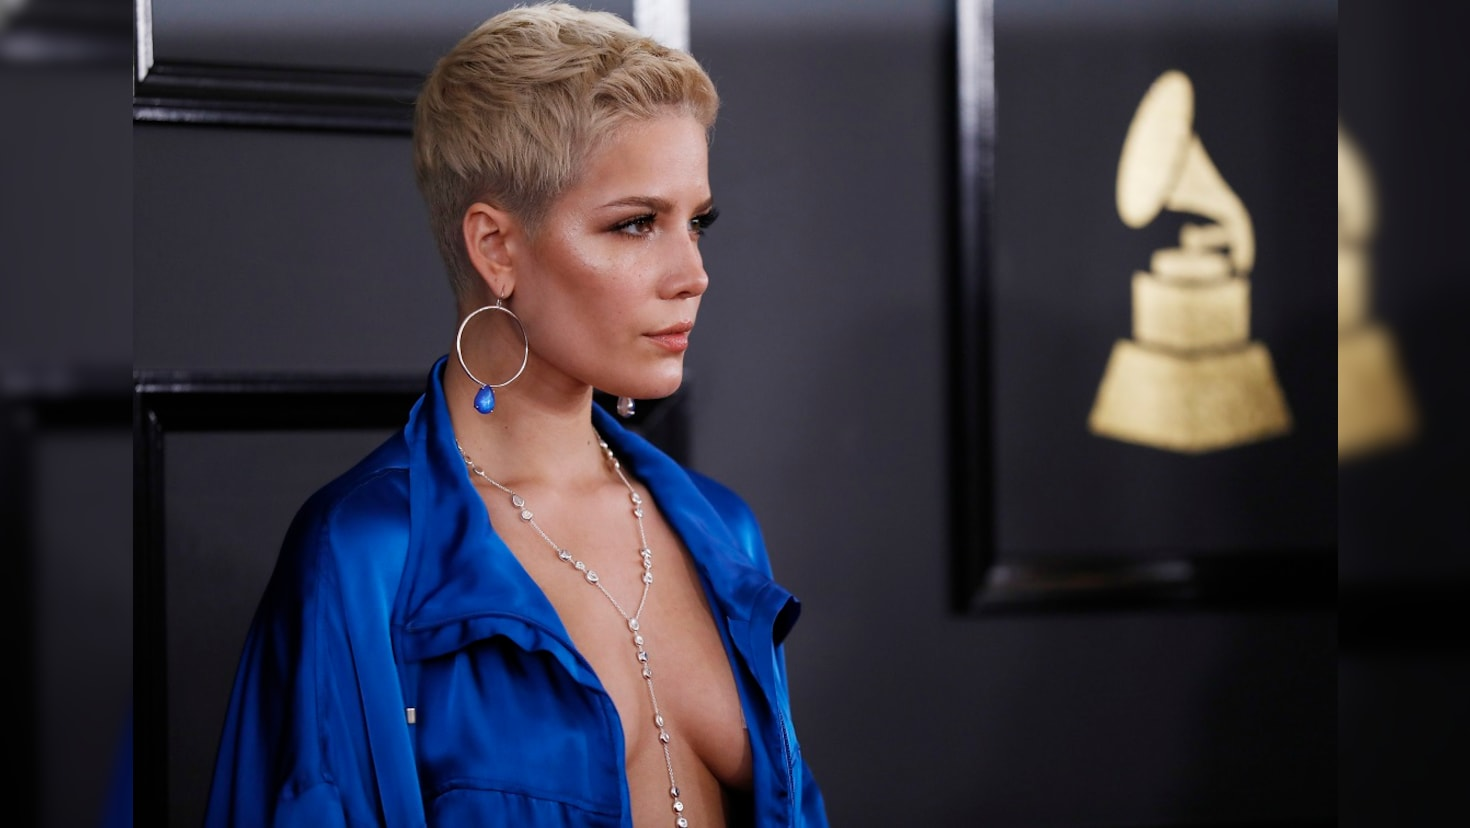 Halsey slams 'elusive' Grammy nomination process after snub, says it's not always about 'music or quality'